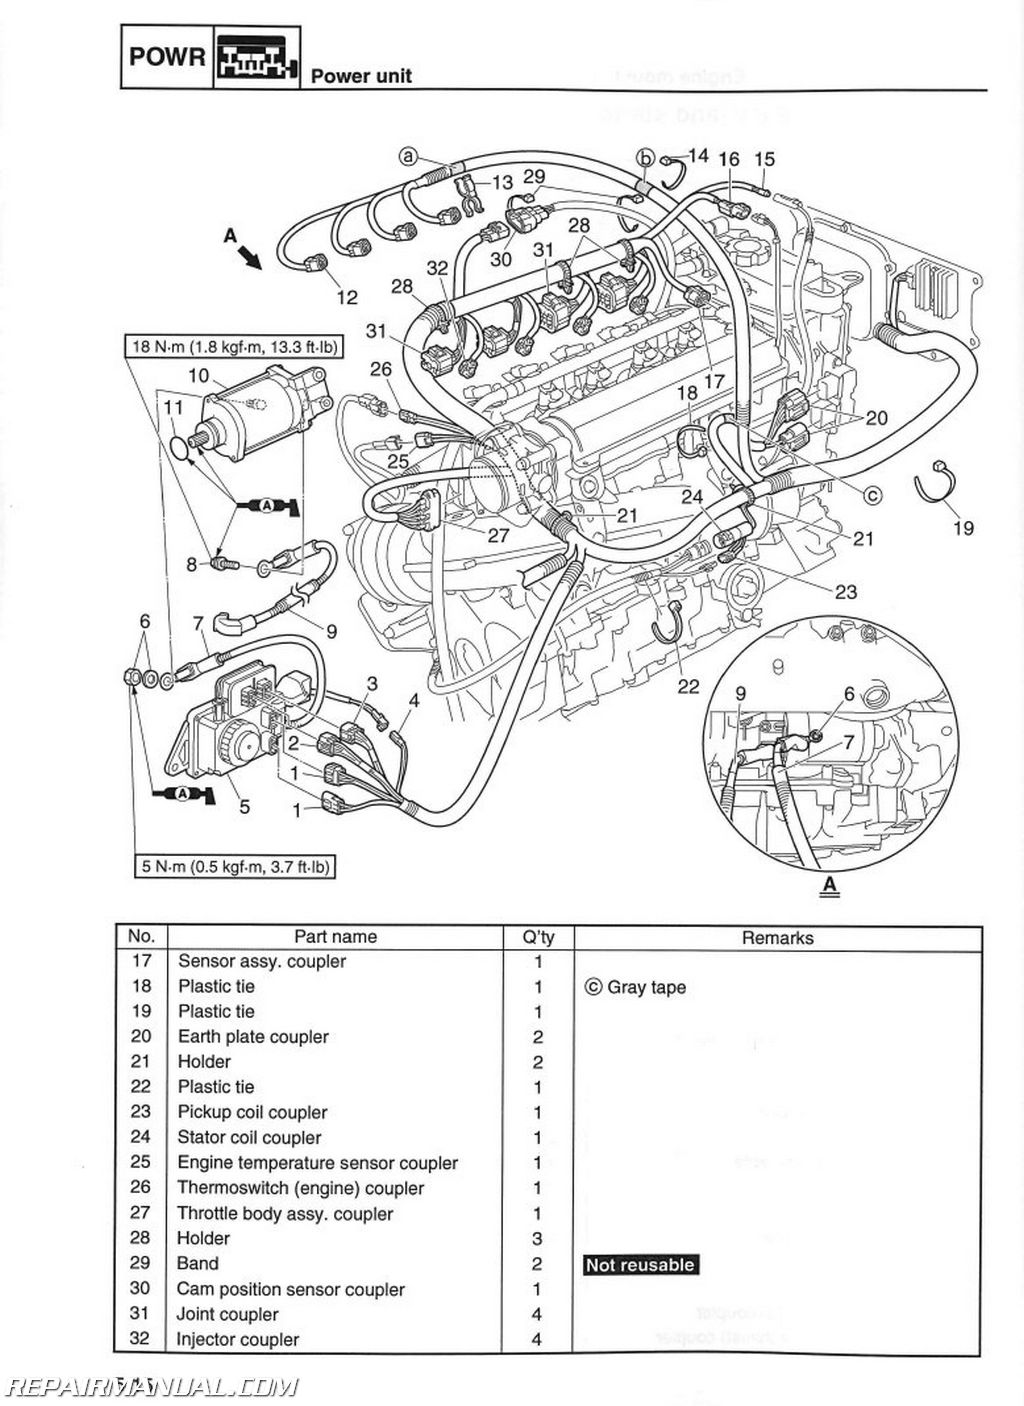 2014 Yamaha Grizzly Wiring Harness Block And Schematic Diagrams Rd 350 Diagram 2010 Vx1100 Cruiser Deluxe 2015 V1 Sport Waverunner Rh Repairmanual Com Kenworth